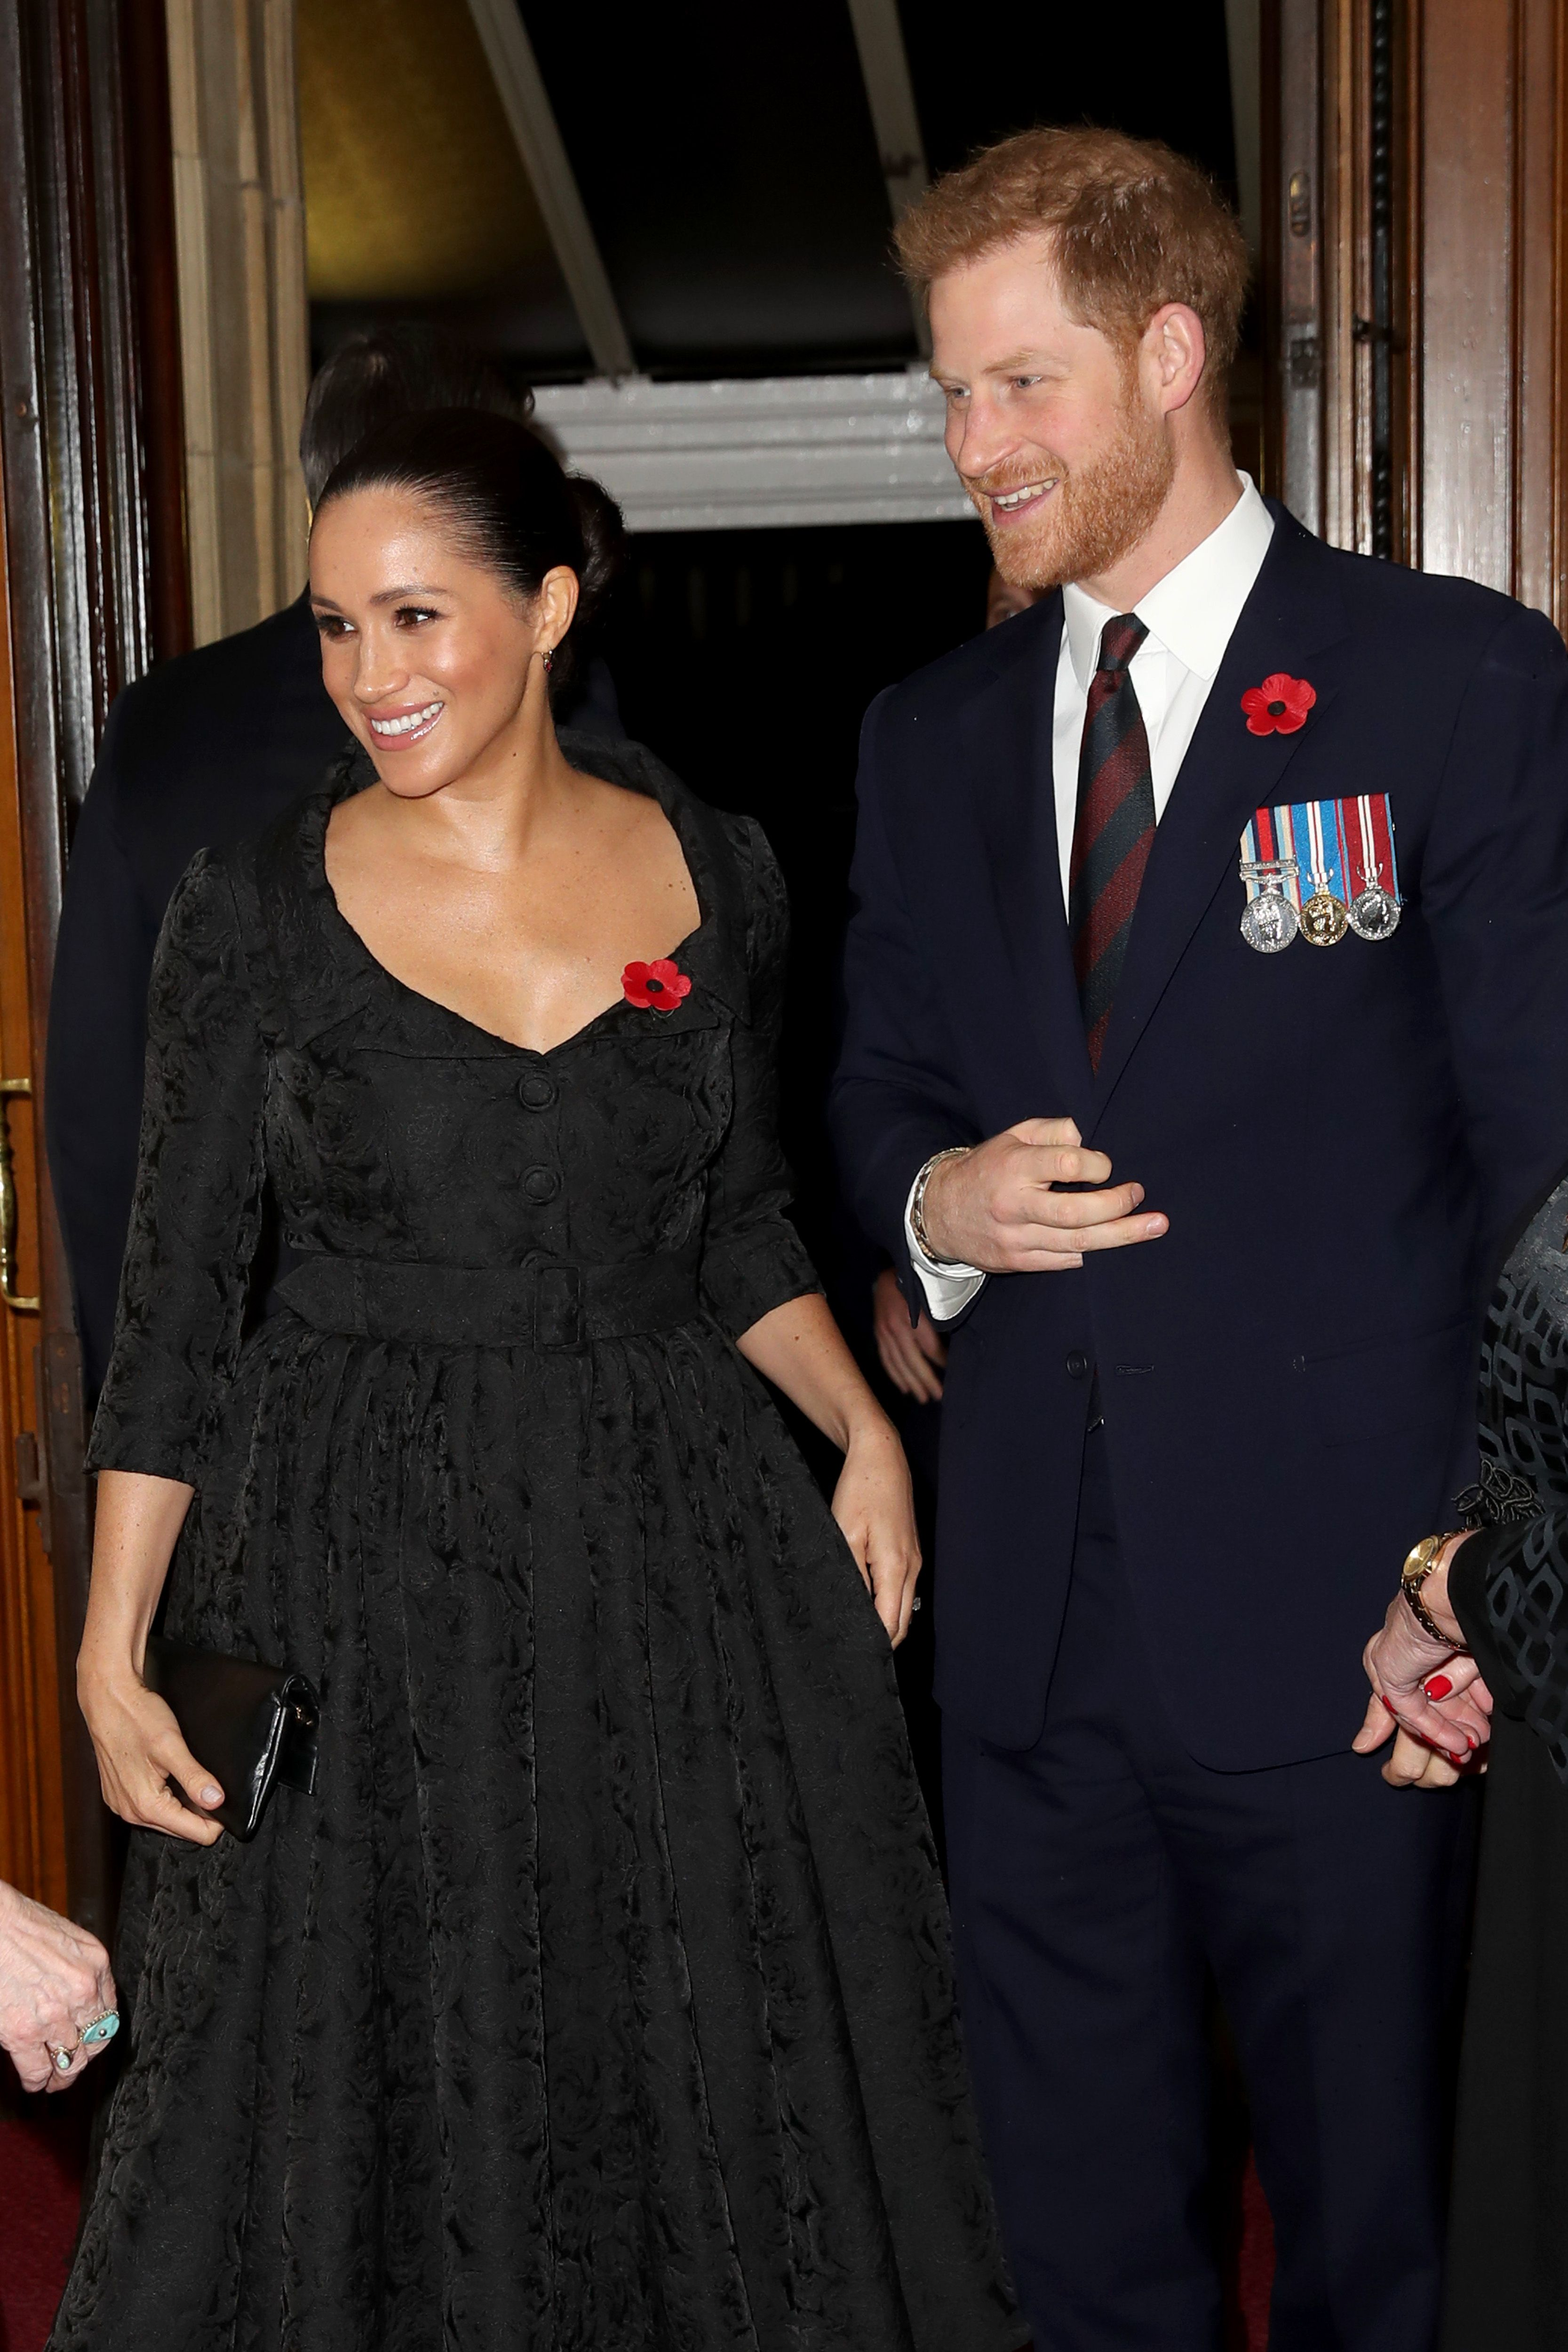 Meghan Markle and Prince Harry just released an unseen photo of Archie